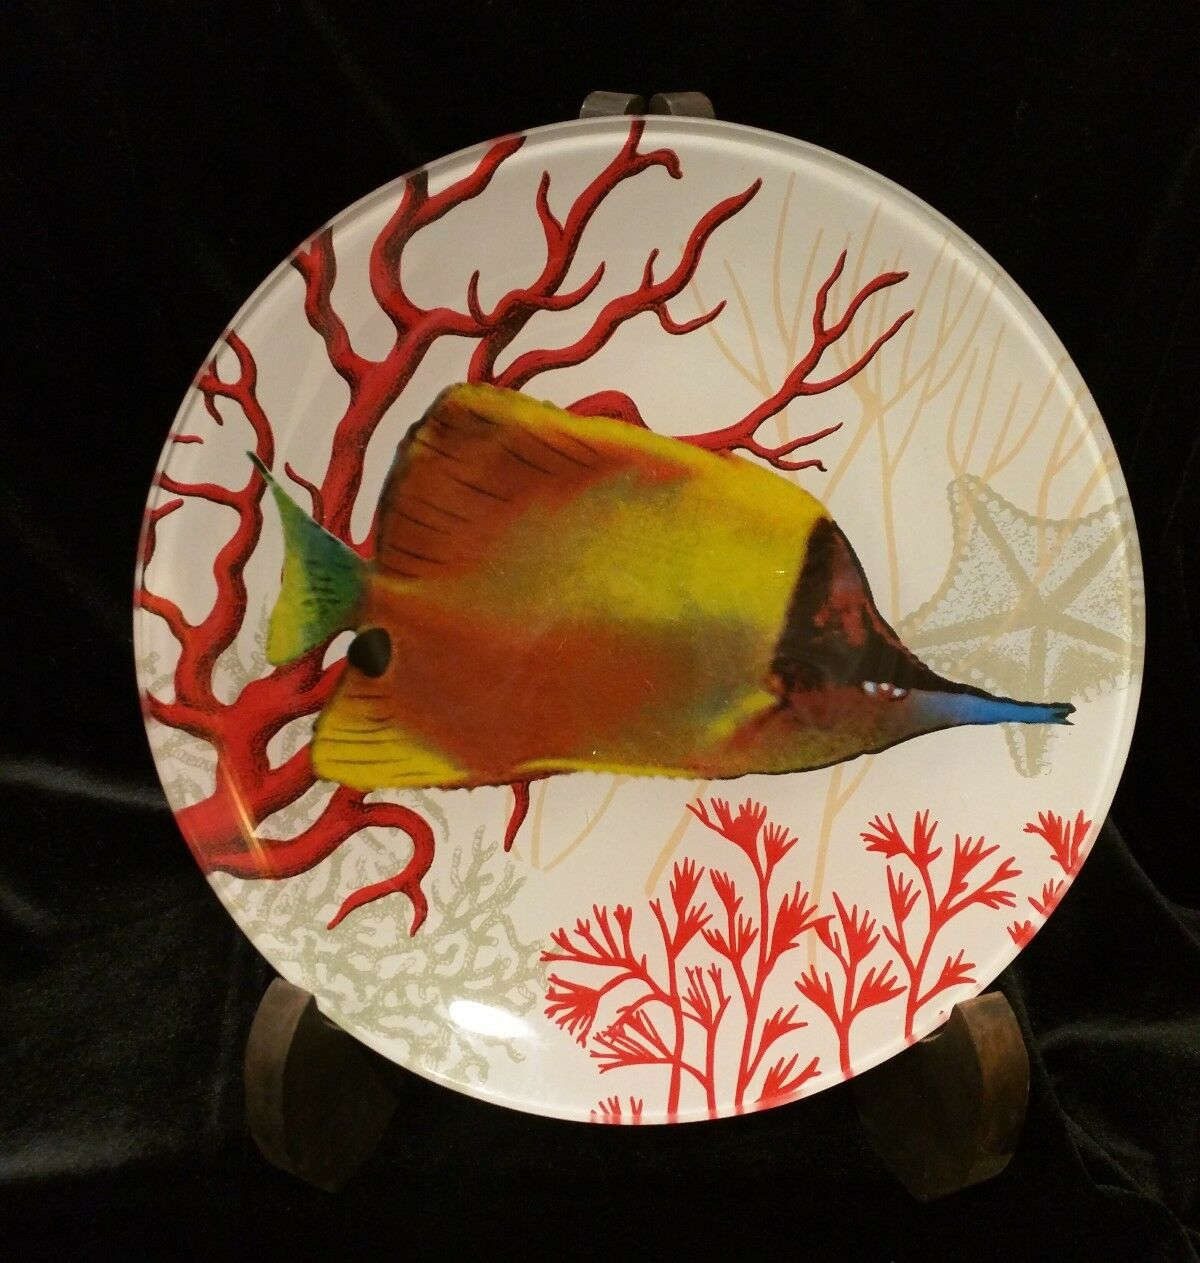 Two's Company Exotic Fish Decorative Glass Plates Plates Plates Set of 5 cf7fe0